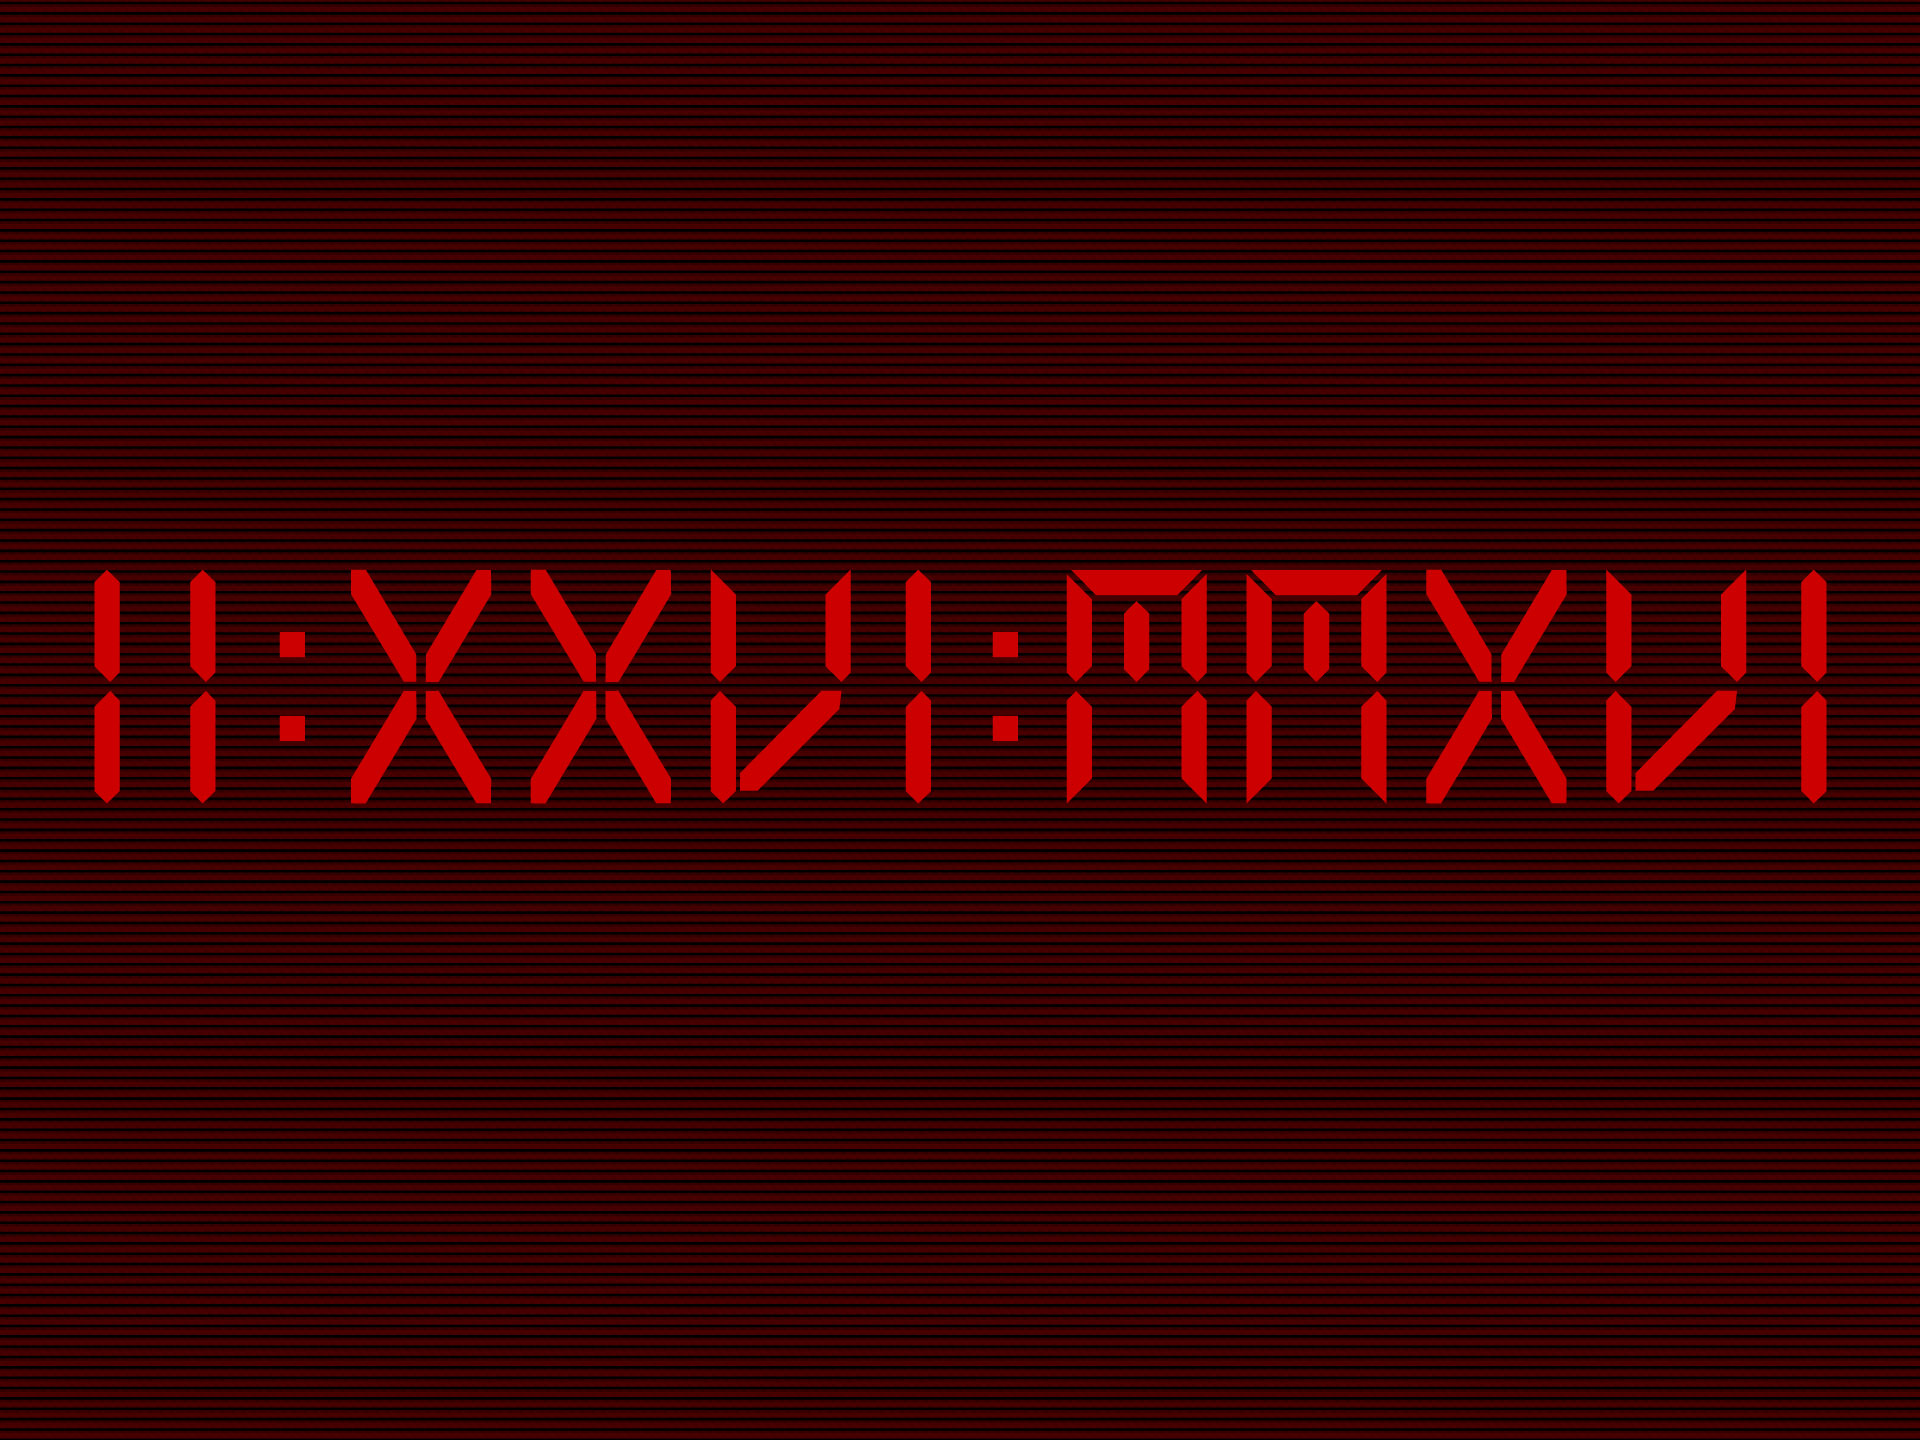 II:XXVI:MMXVI - Death By Laser at Electric Perfume